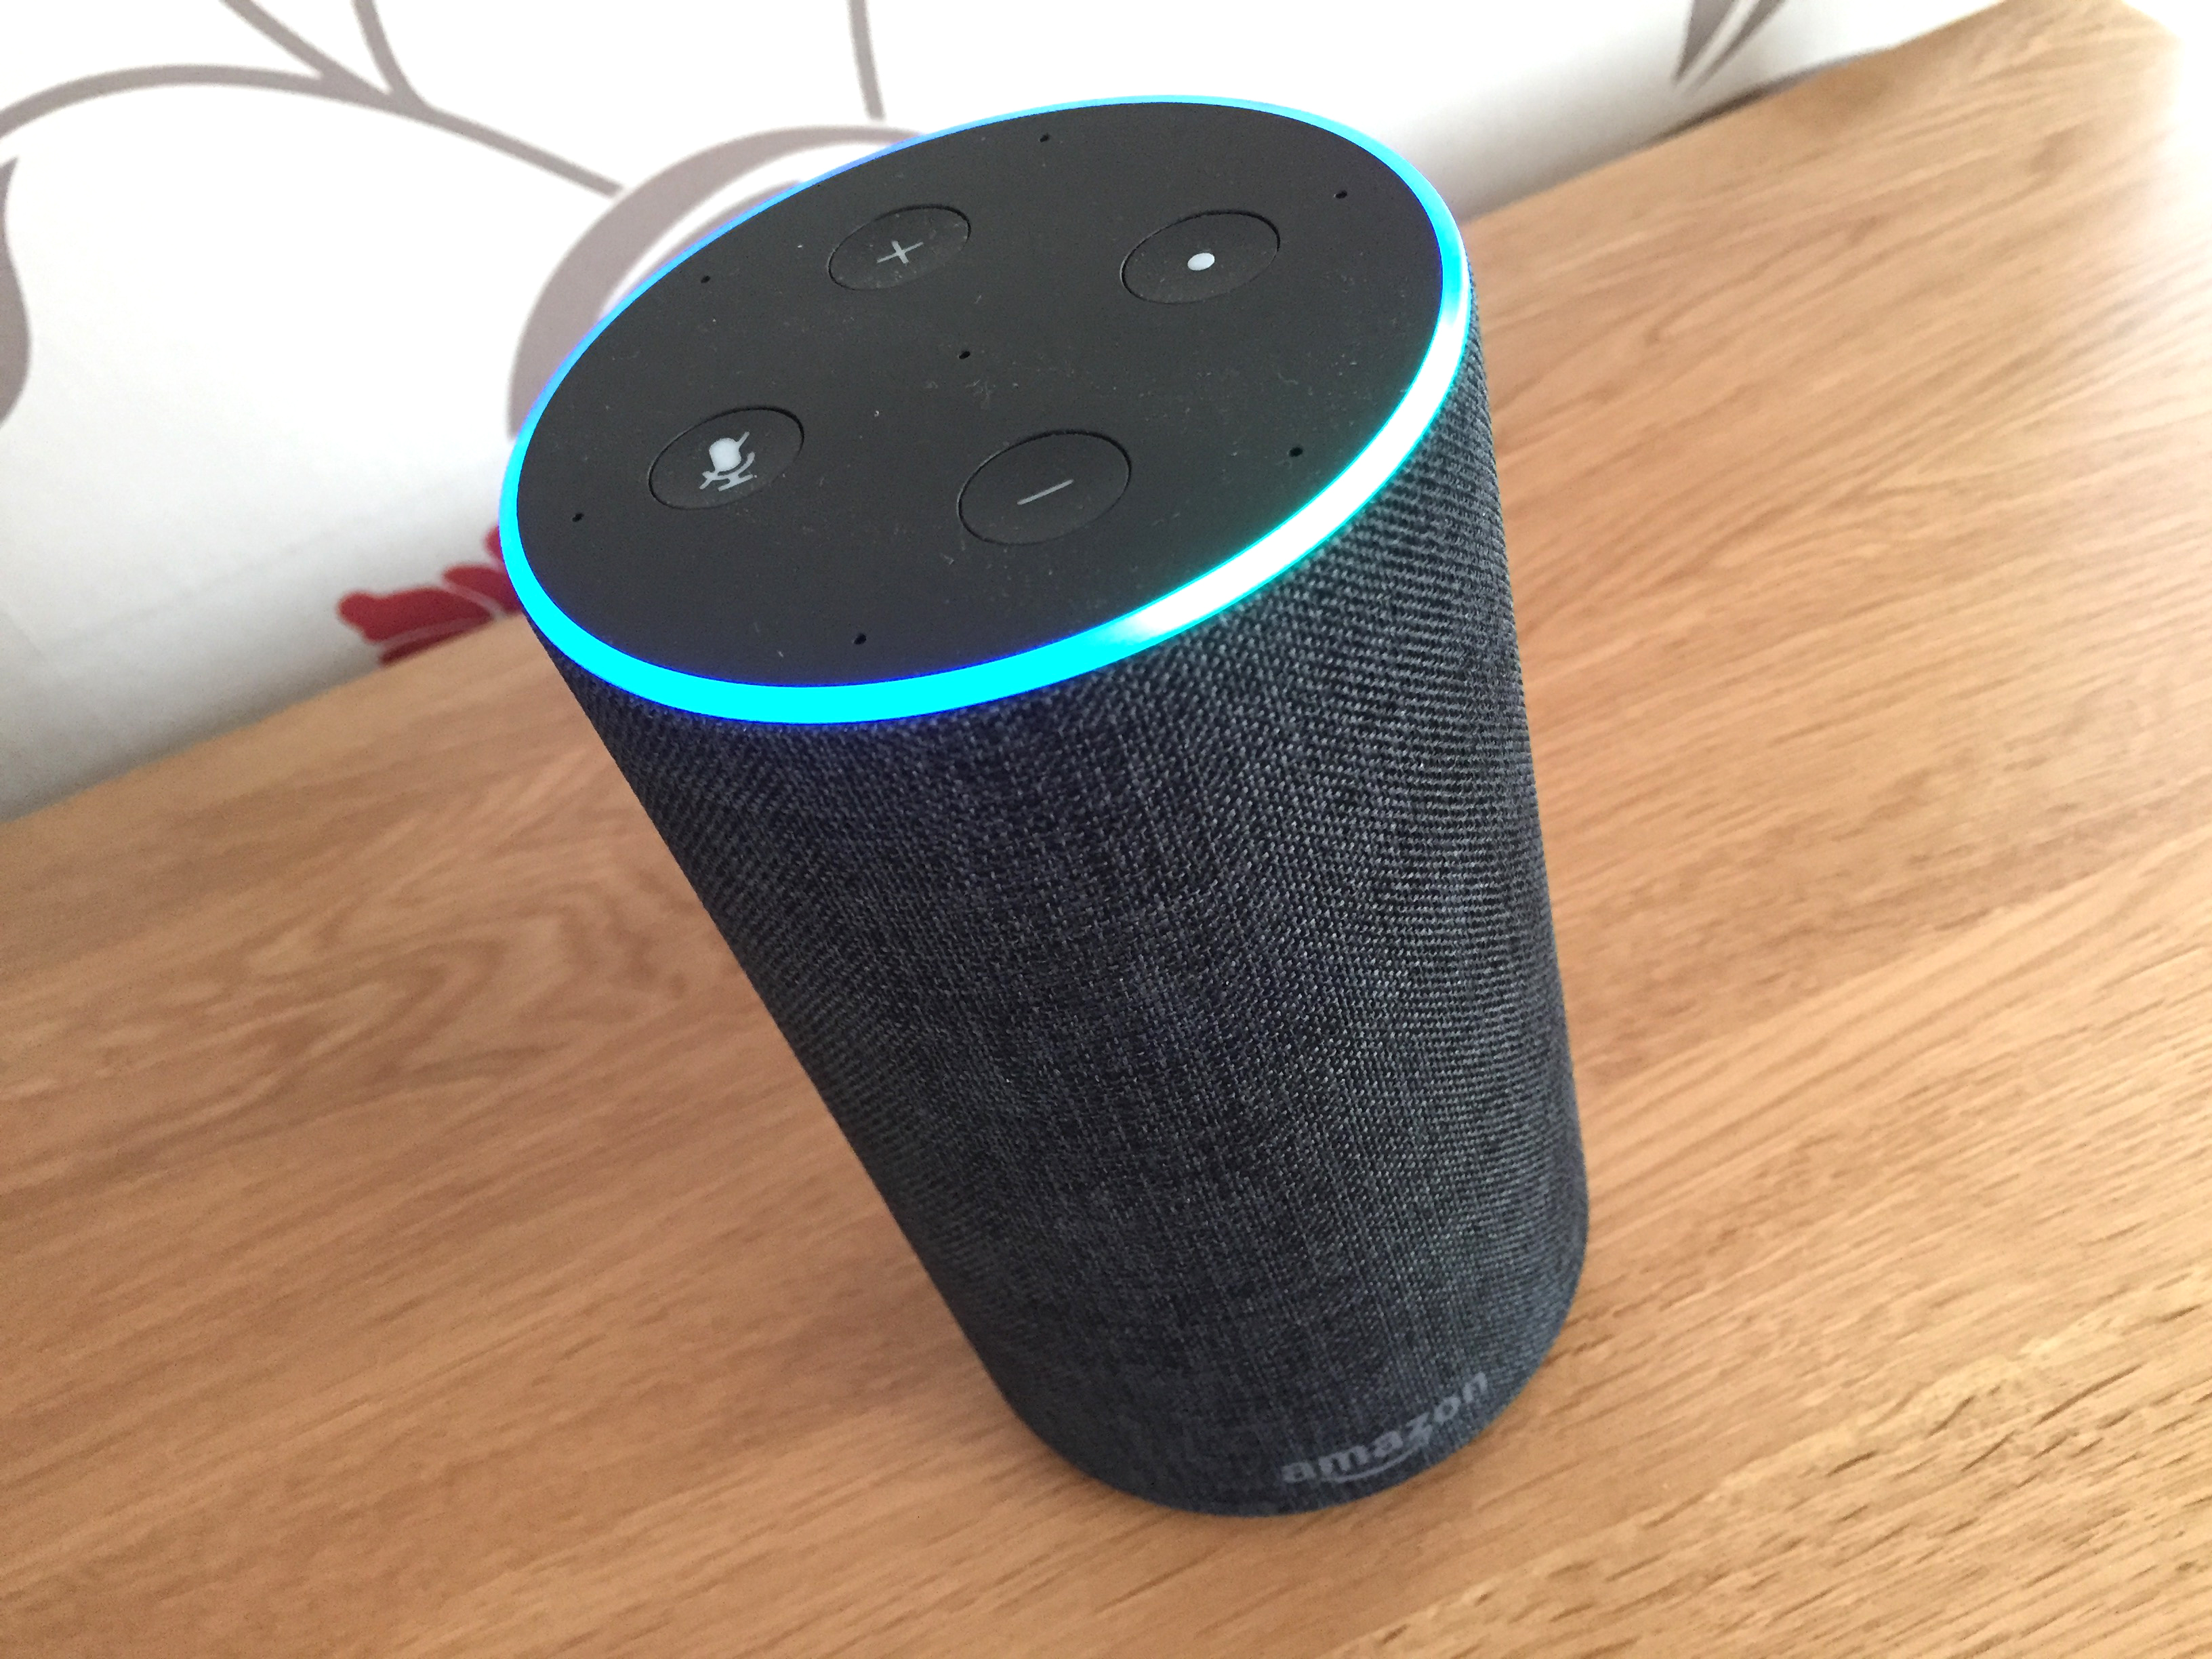 A picture of an Amazon Echo